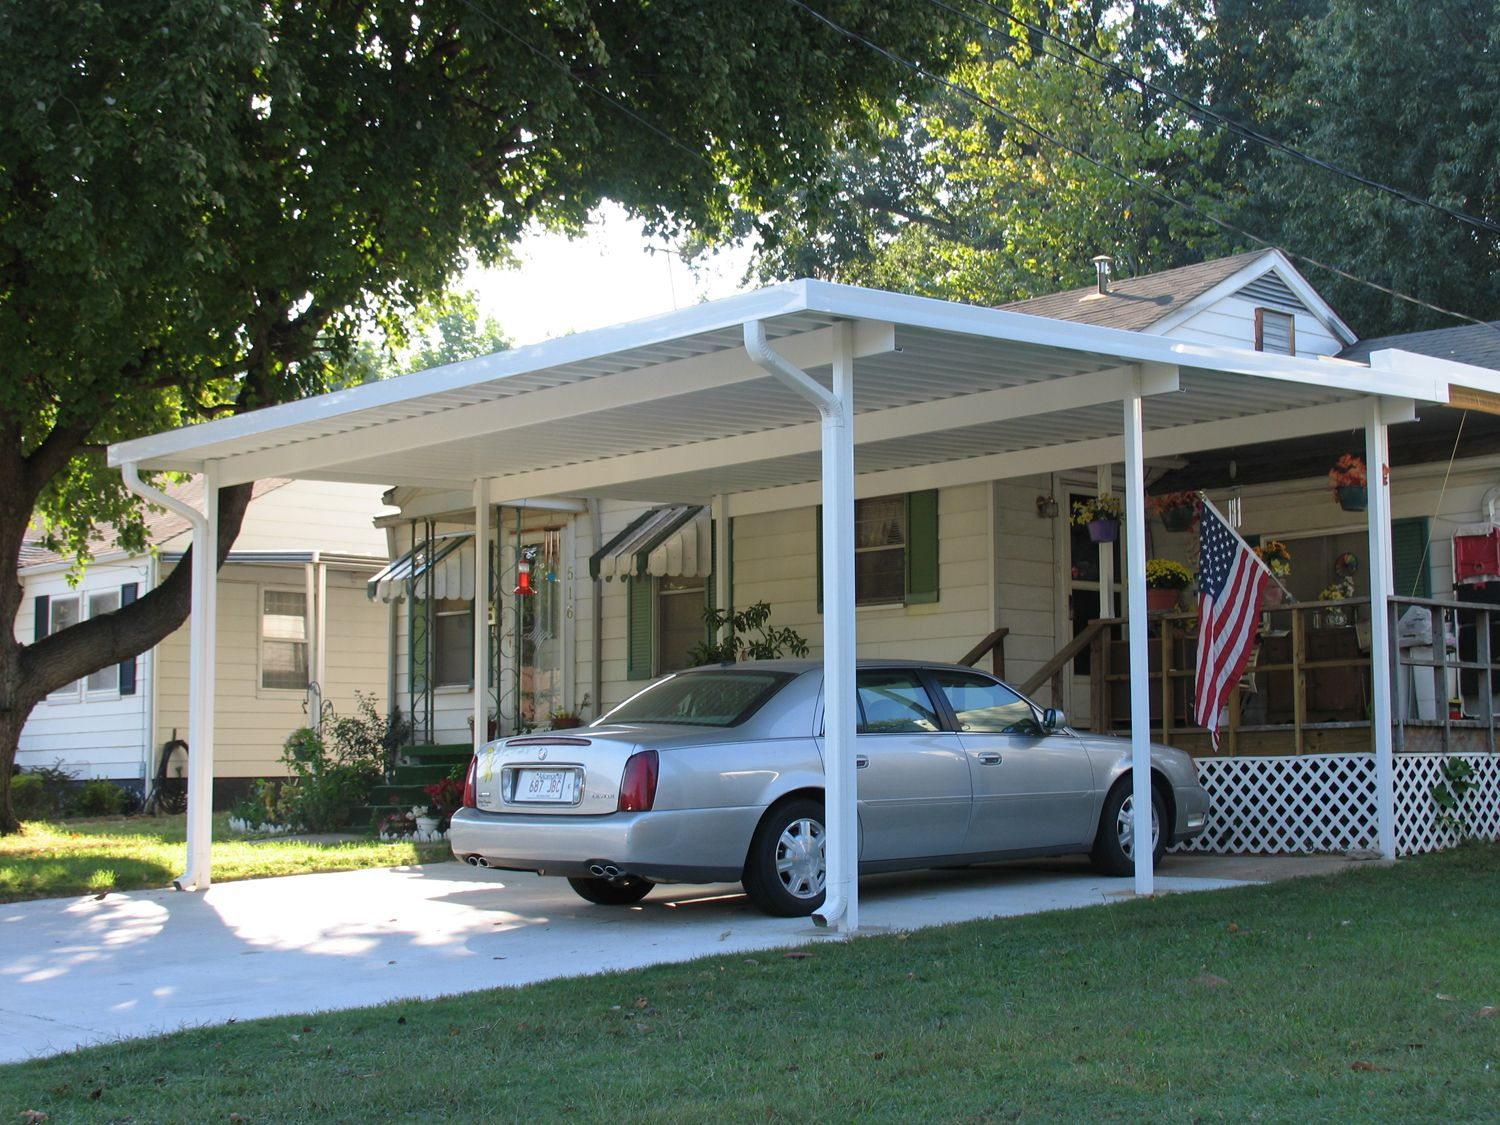 Best Photos Images And Pictures Gallery About Carport Ideas Carport Ideas Attached To House Carport Idea Carport Designs Aluminum Carport Pergola Carport